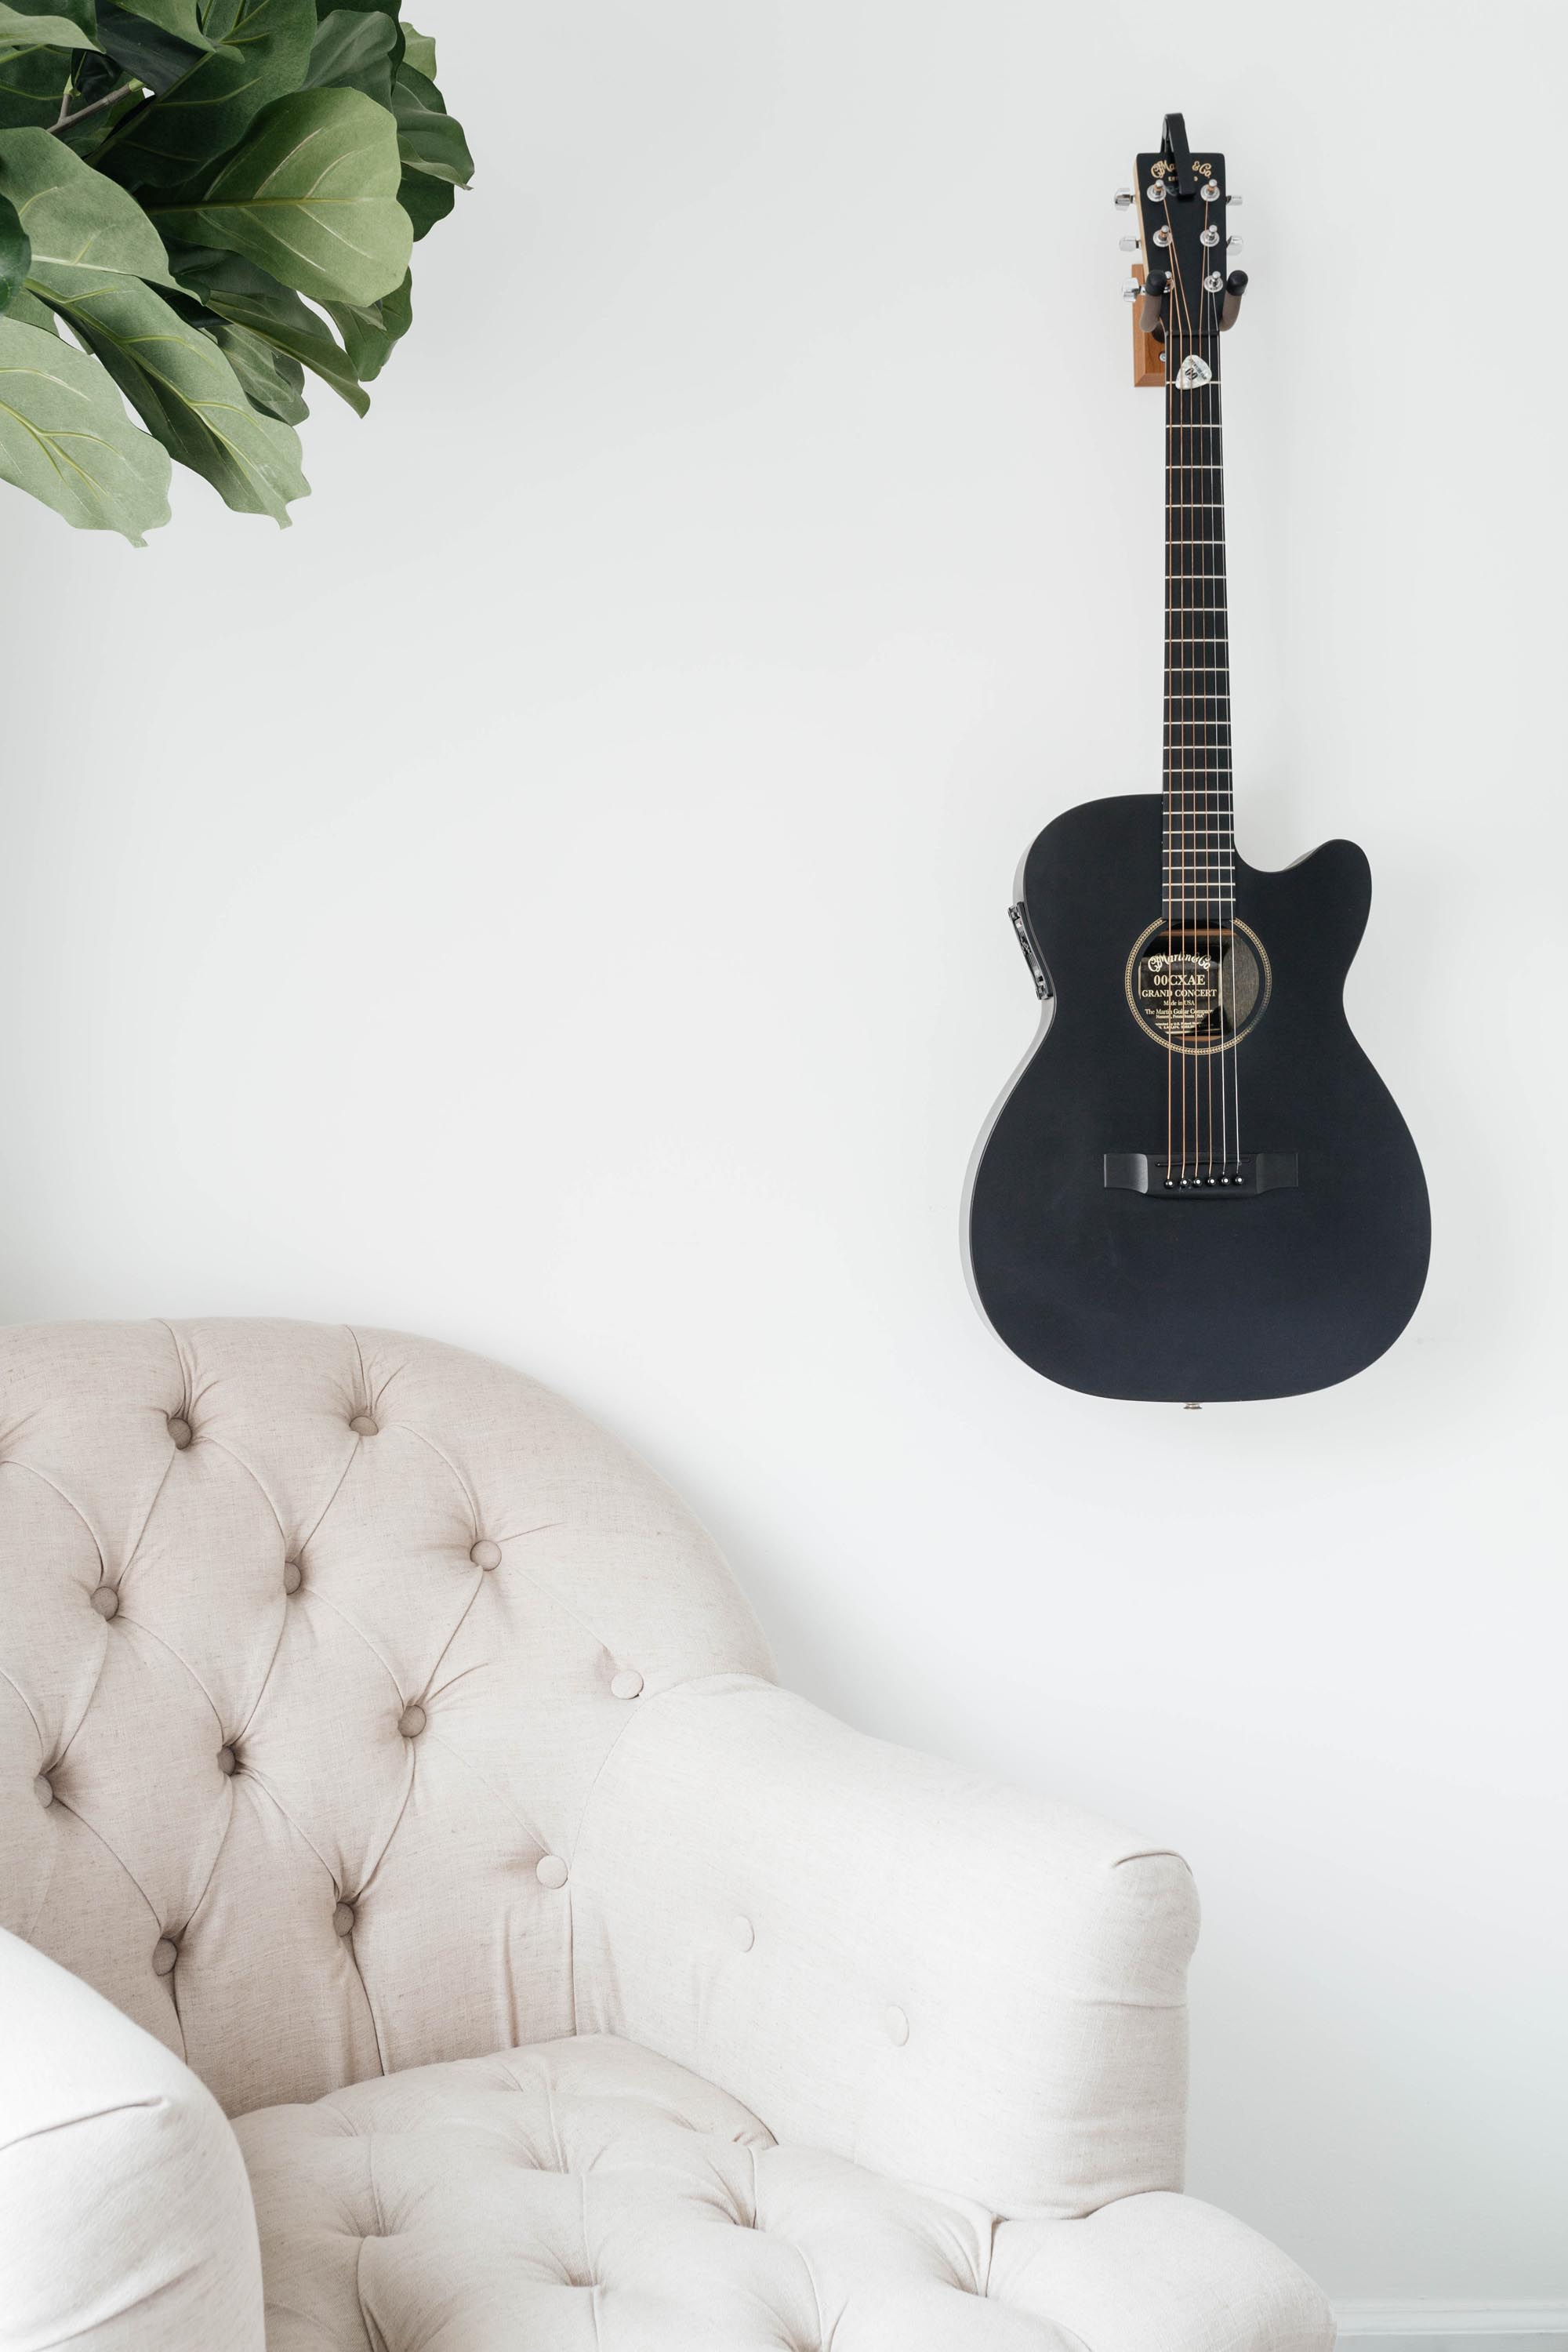 Soft white sofa with dark blue guitar hanging on wall